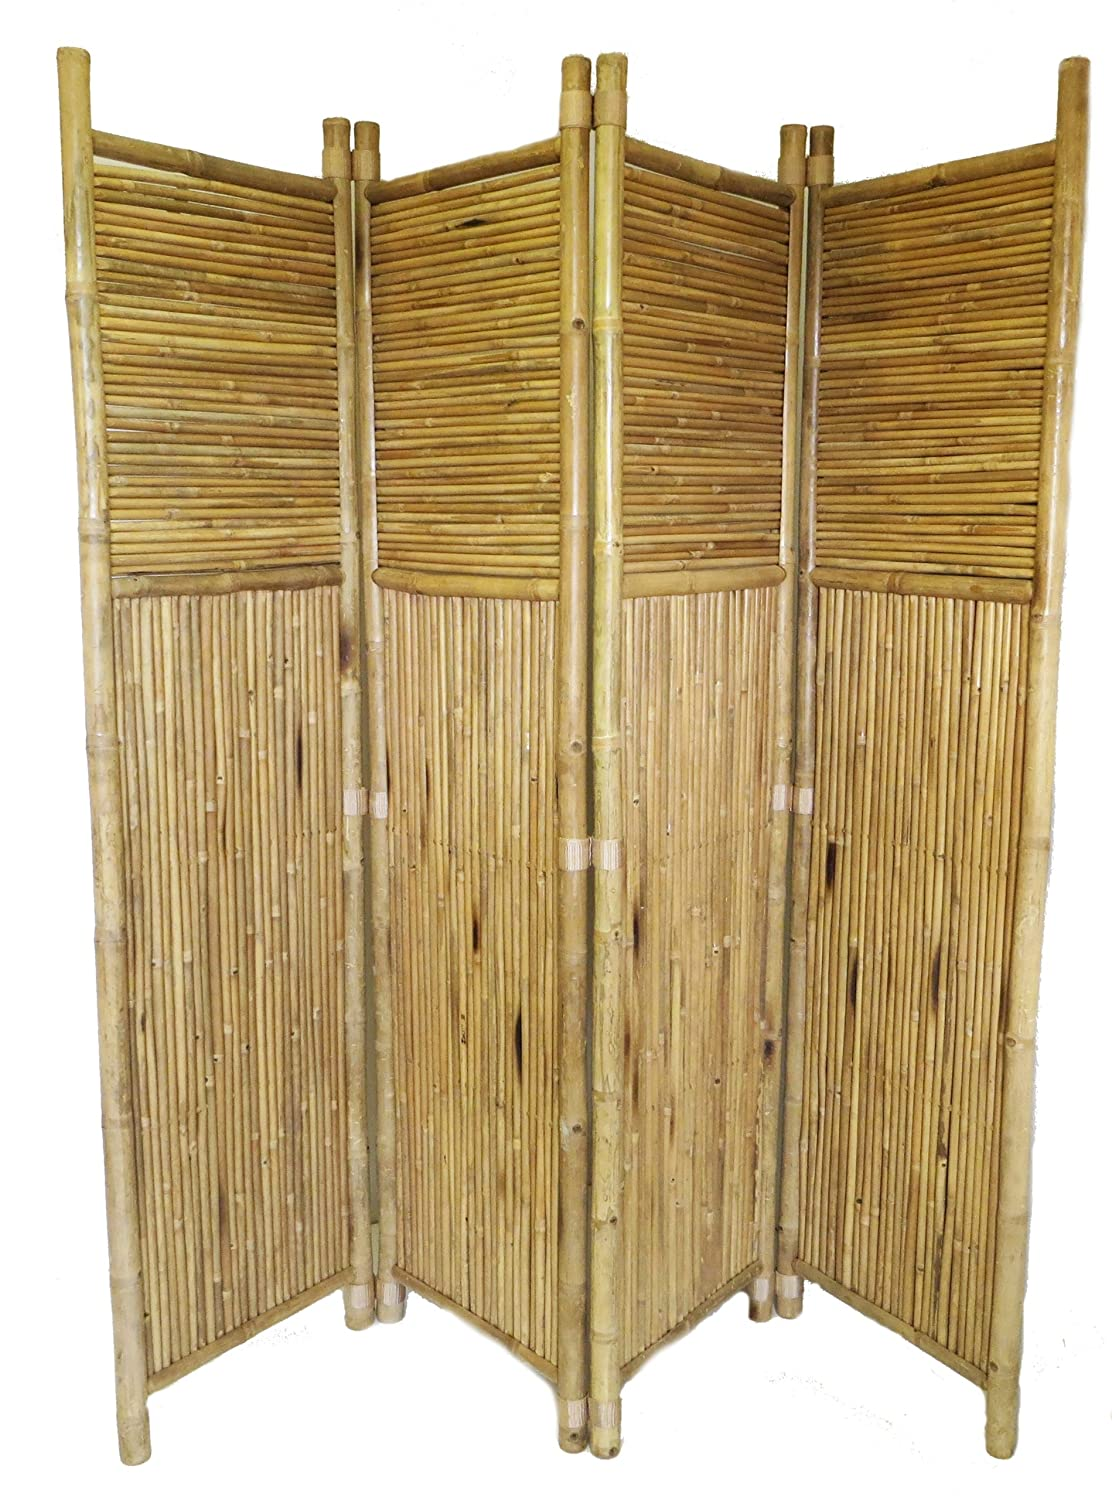 amazoncom  bamboo  panel screen  outdoor decorative fences  - amazoncom  bamboo  panel screen  outdoor decorative fences  patiolawn  garden